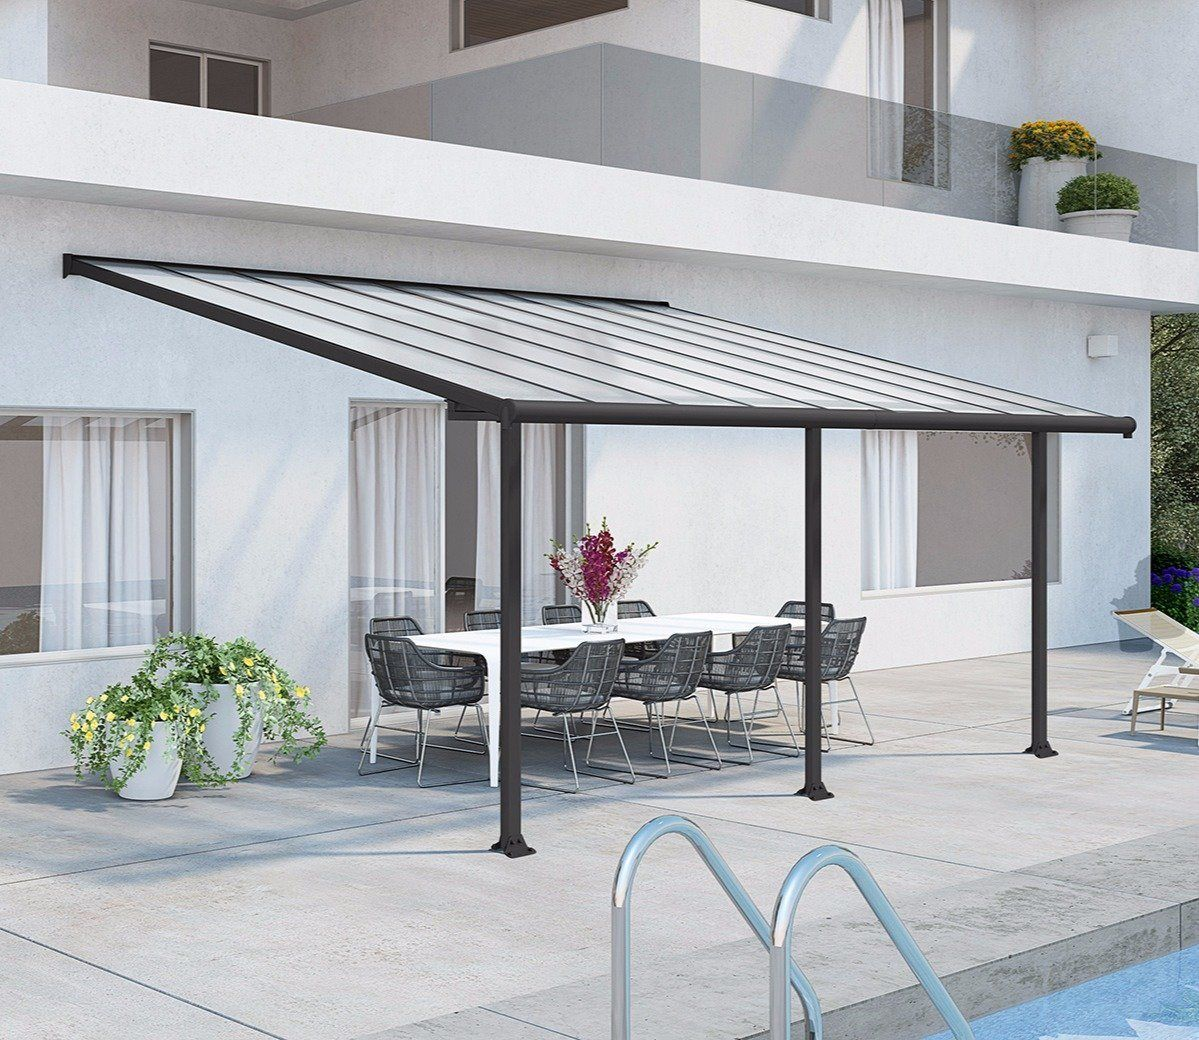 Palram Olympia Grey 20 x 9 ft Patio Cover in 2019 | outdoor